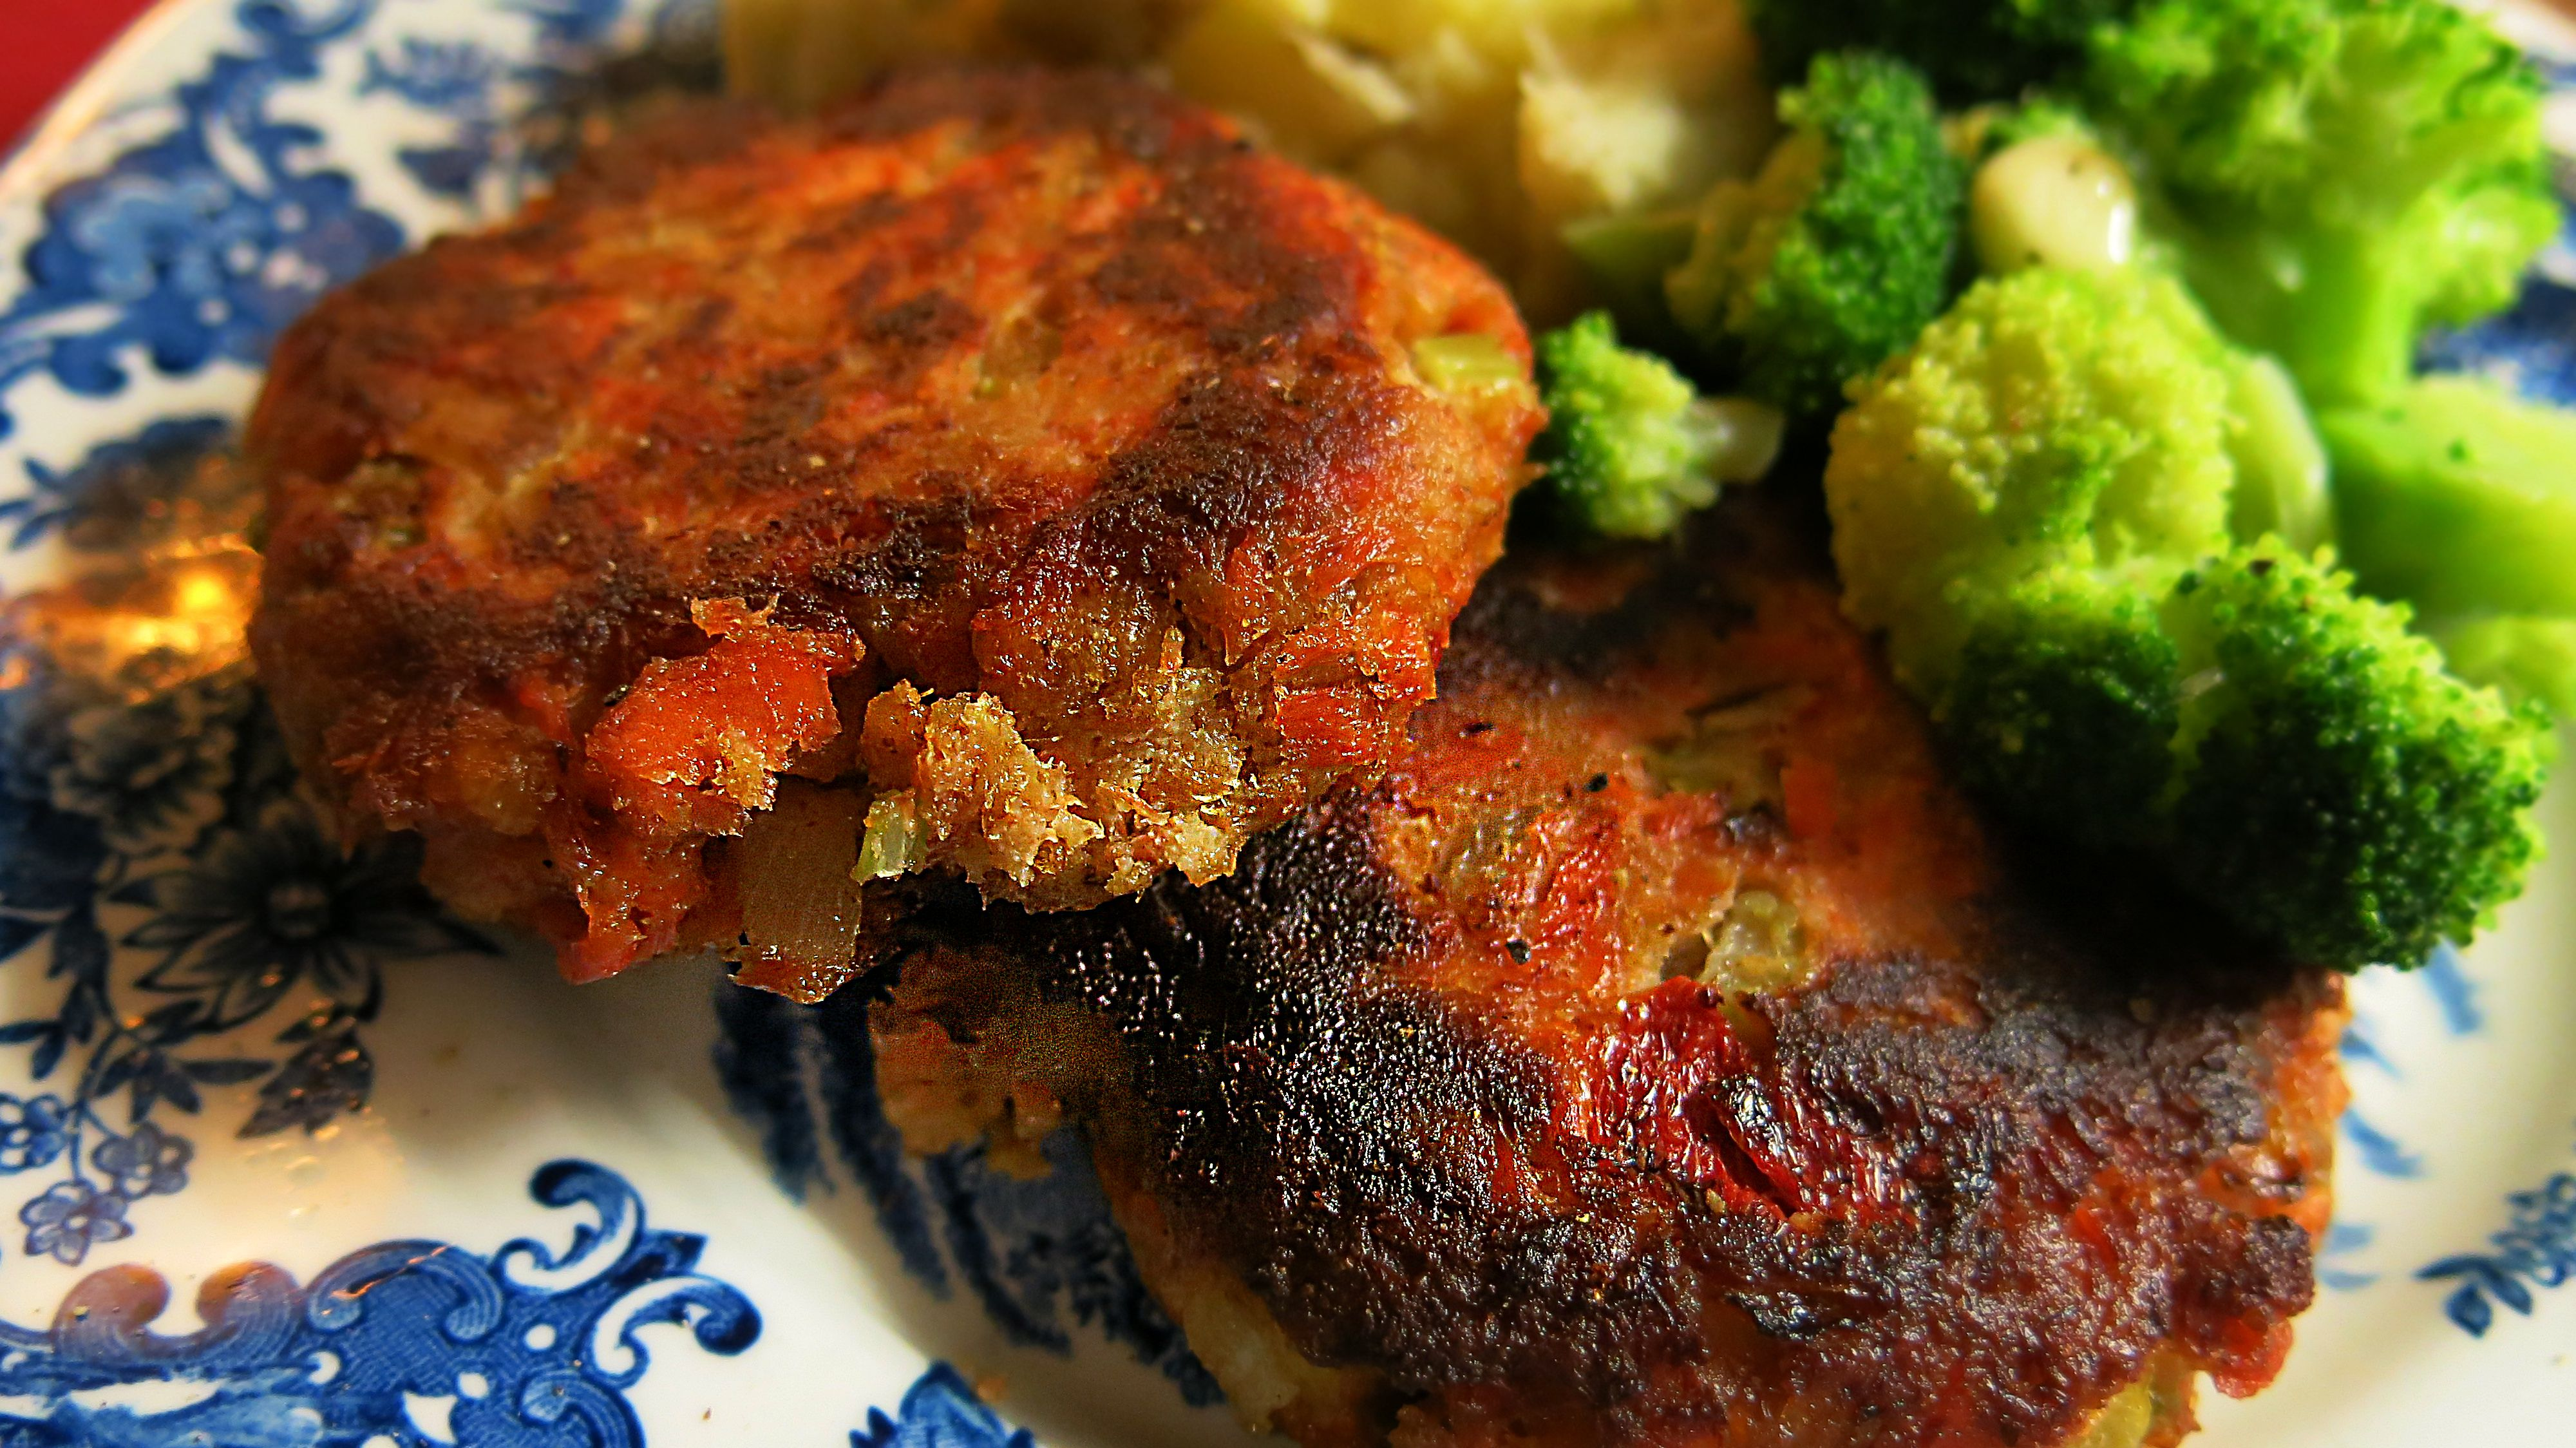 Baked a slab of wild pacific salmon, shredded it and added the usual fishcake stuff to it. Instead of mayonnaise, I used a couple tablespoons of ranch dip. Sauteed in olive oil: Salmon cakes.